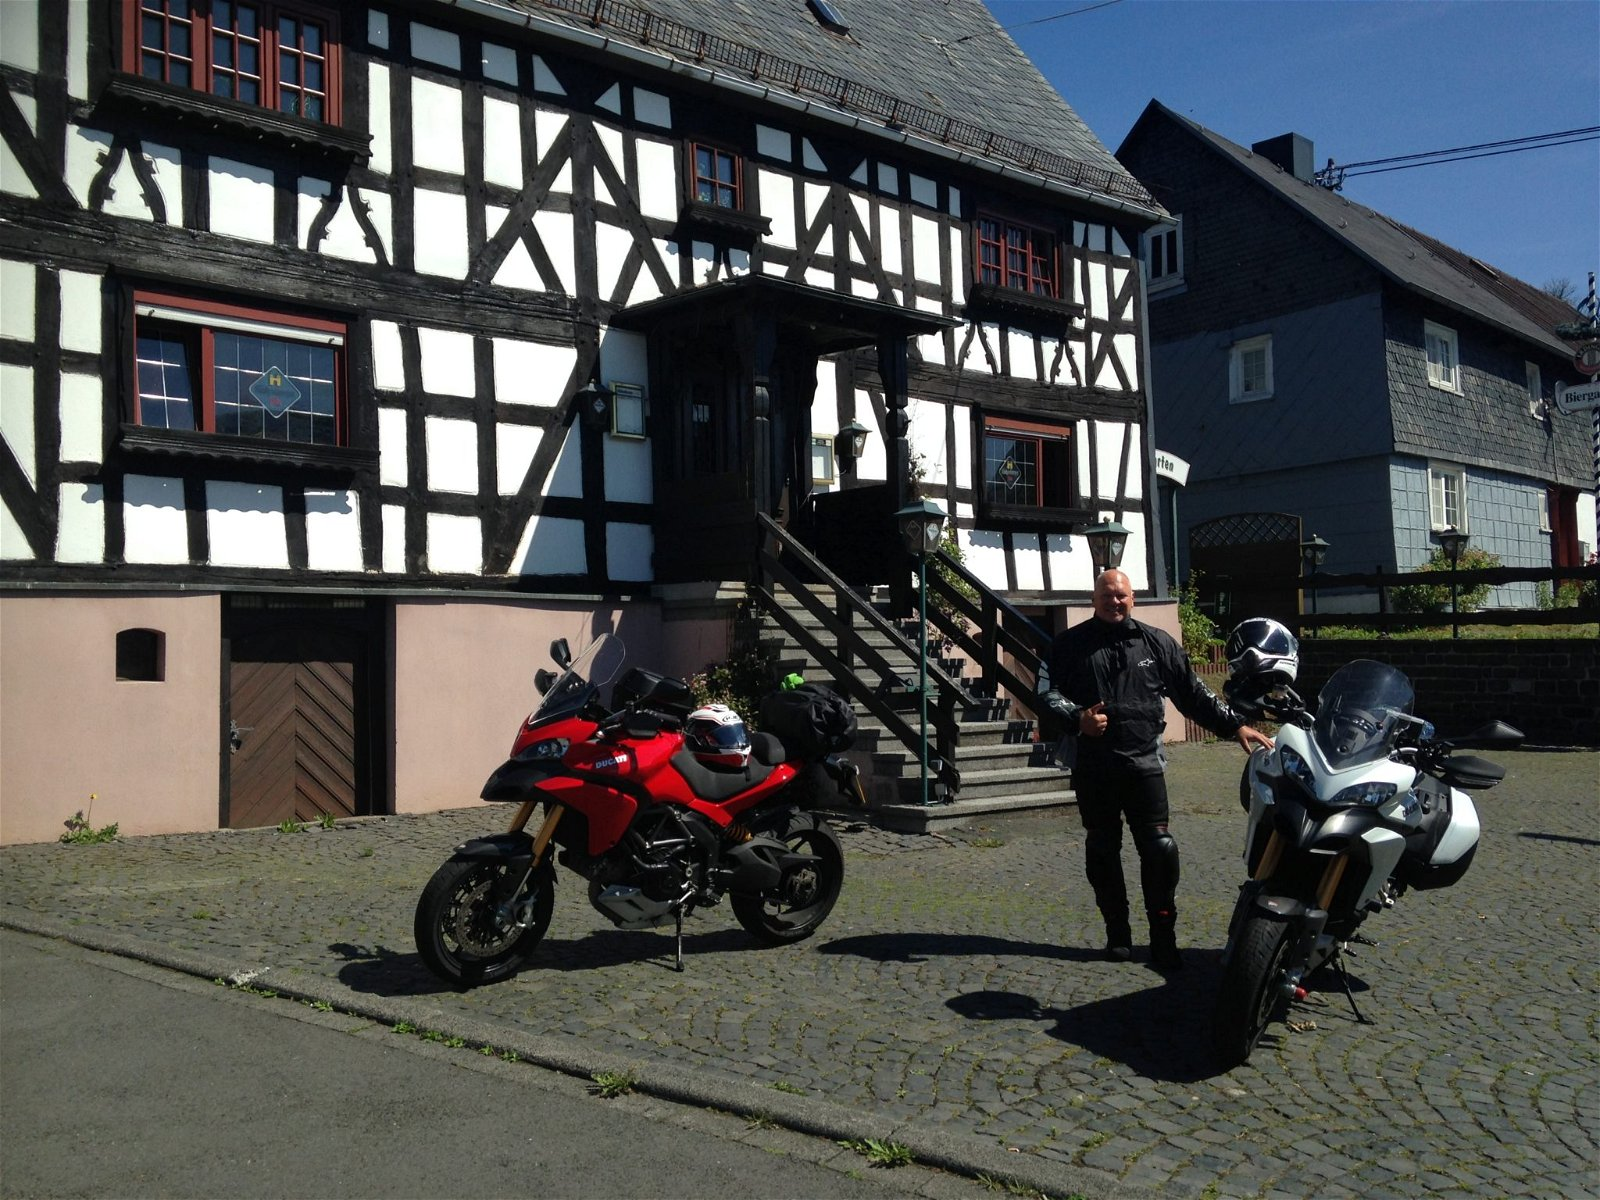 Carl Jones – Ducati Multistrada 1200S